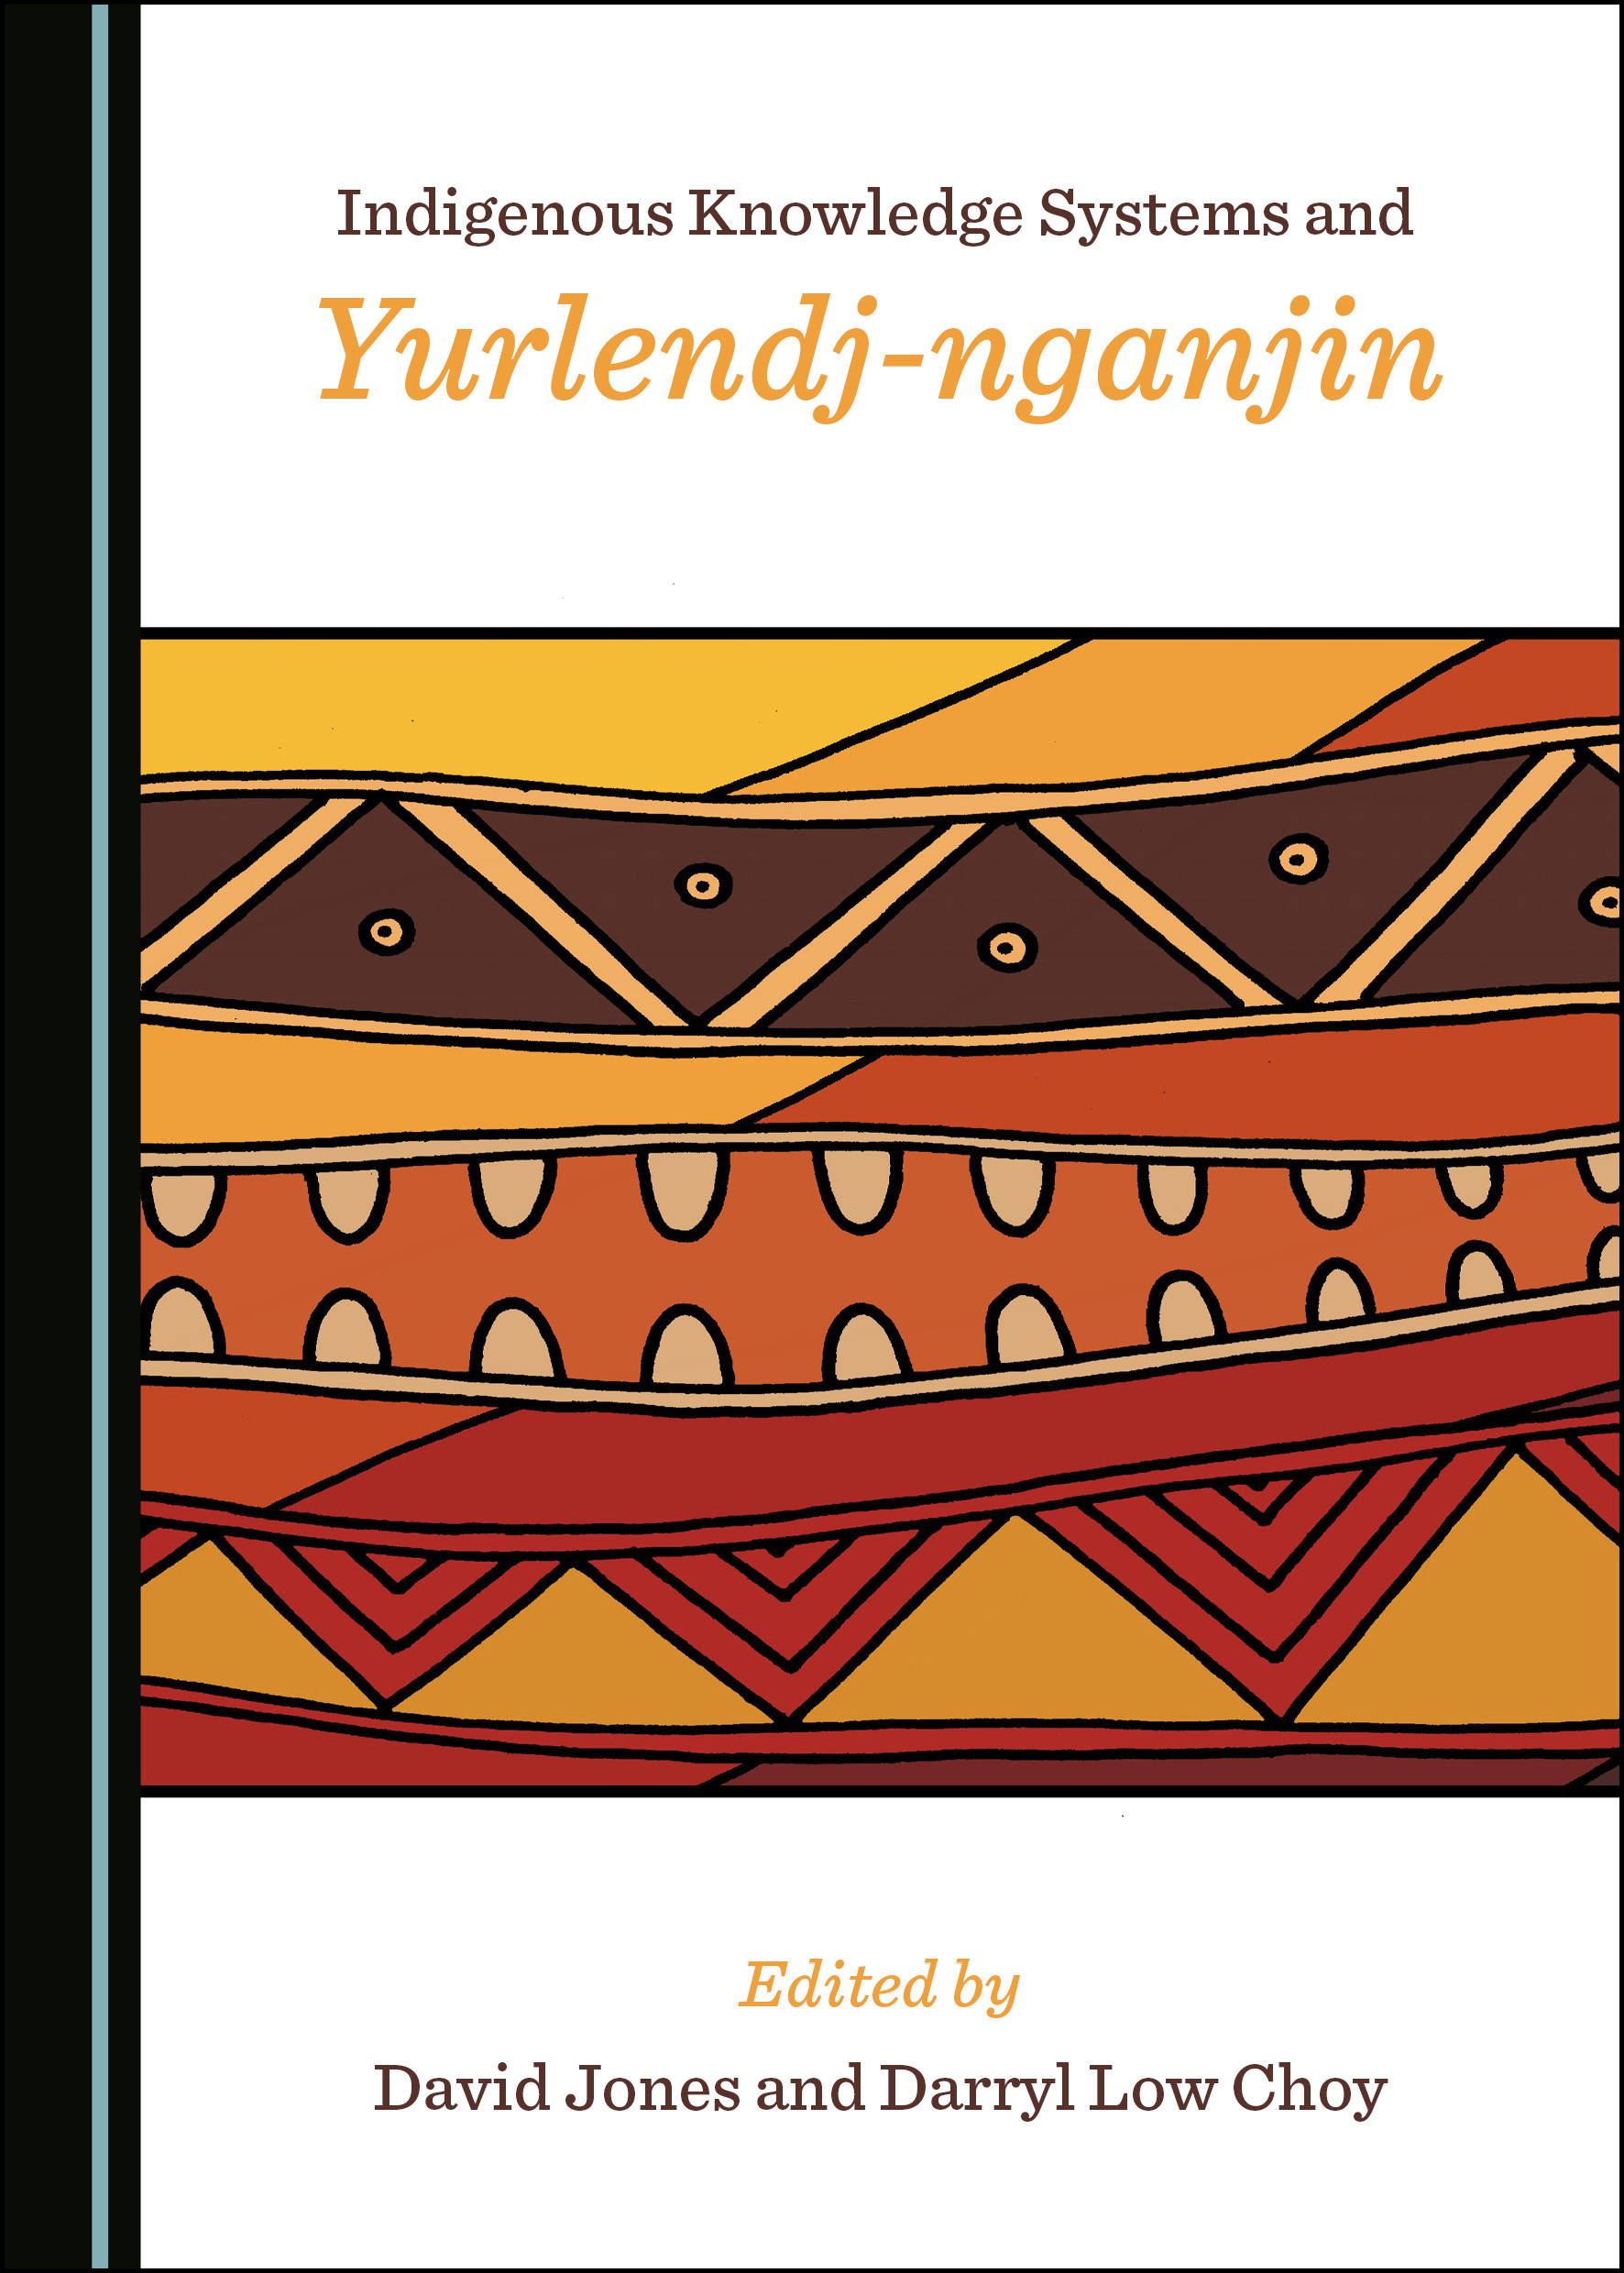 Indigenous Knowledge Systems and Yurlendj-nganjin